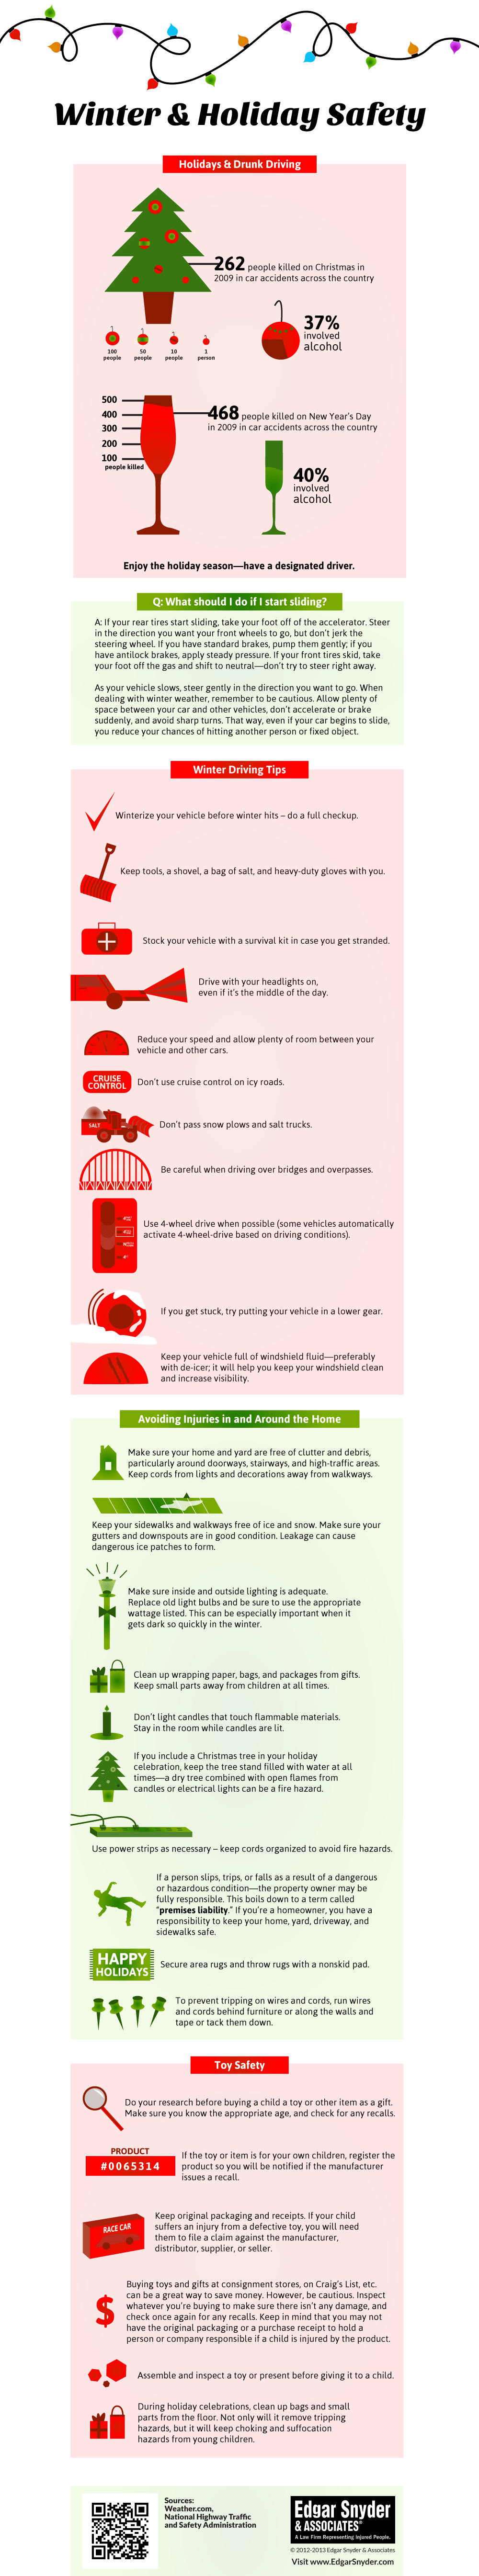 Avoid injuries around the house and while driving this winter with this holiday safety infographic.